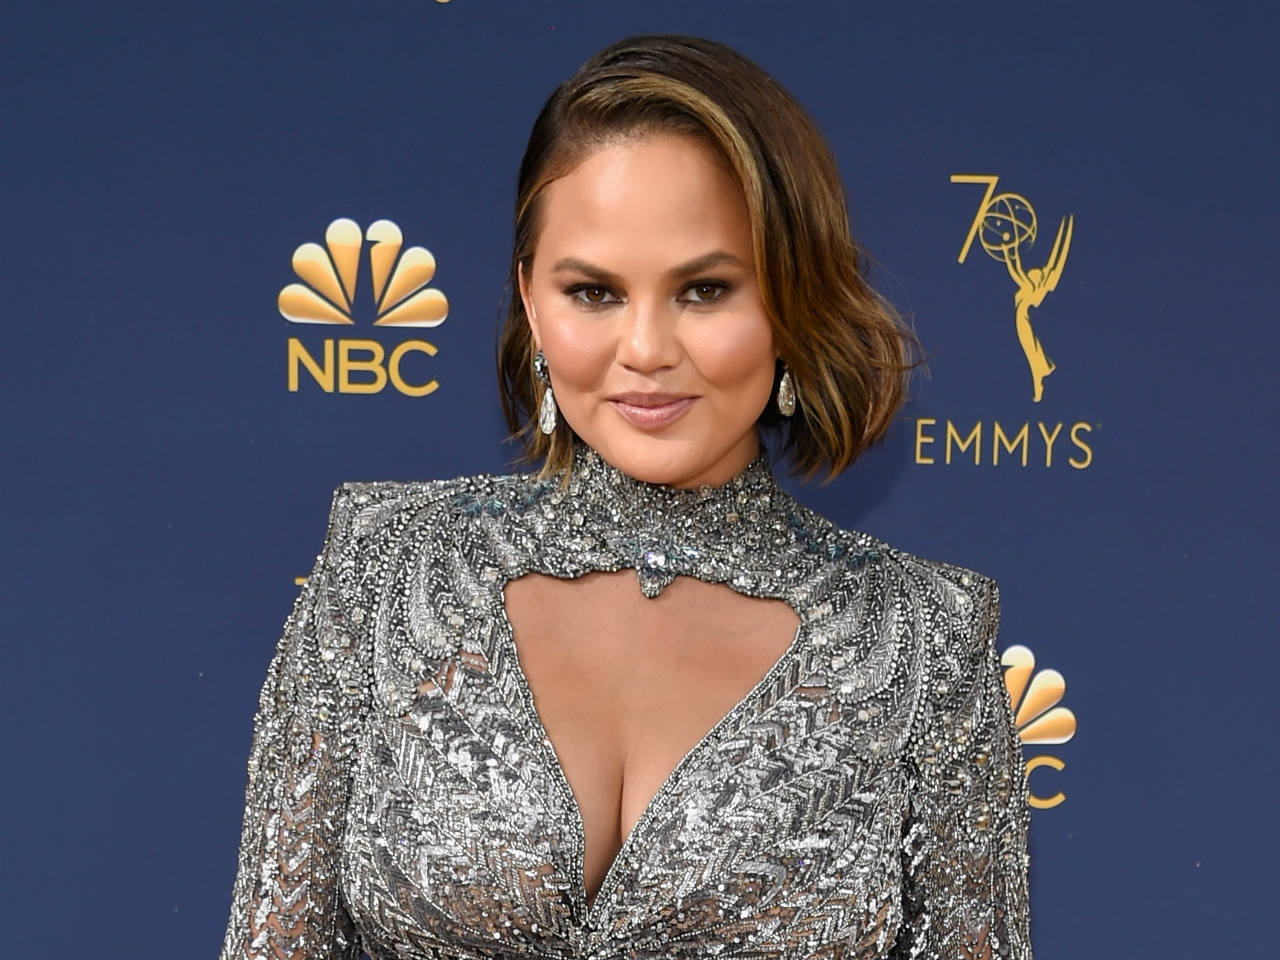 Chrissy Teigen smiling in a silver dress on the Emmys red carpet